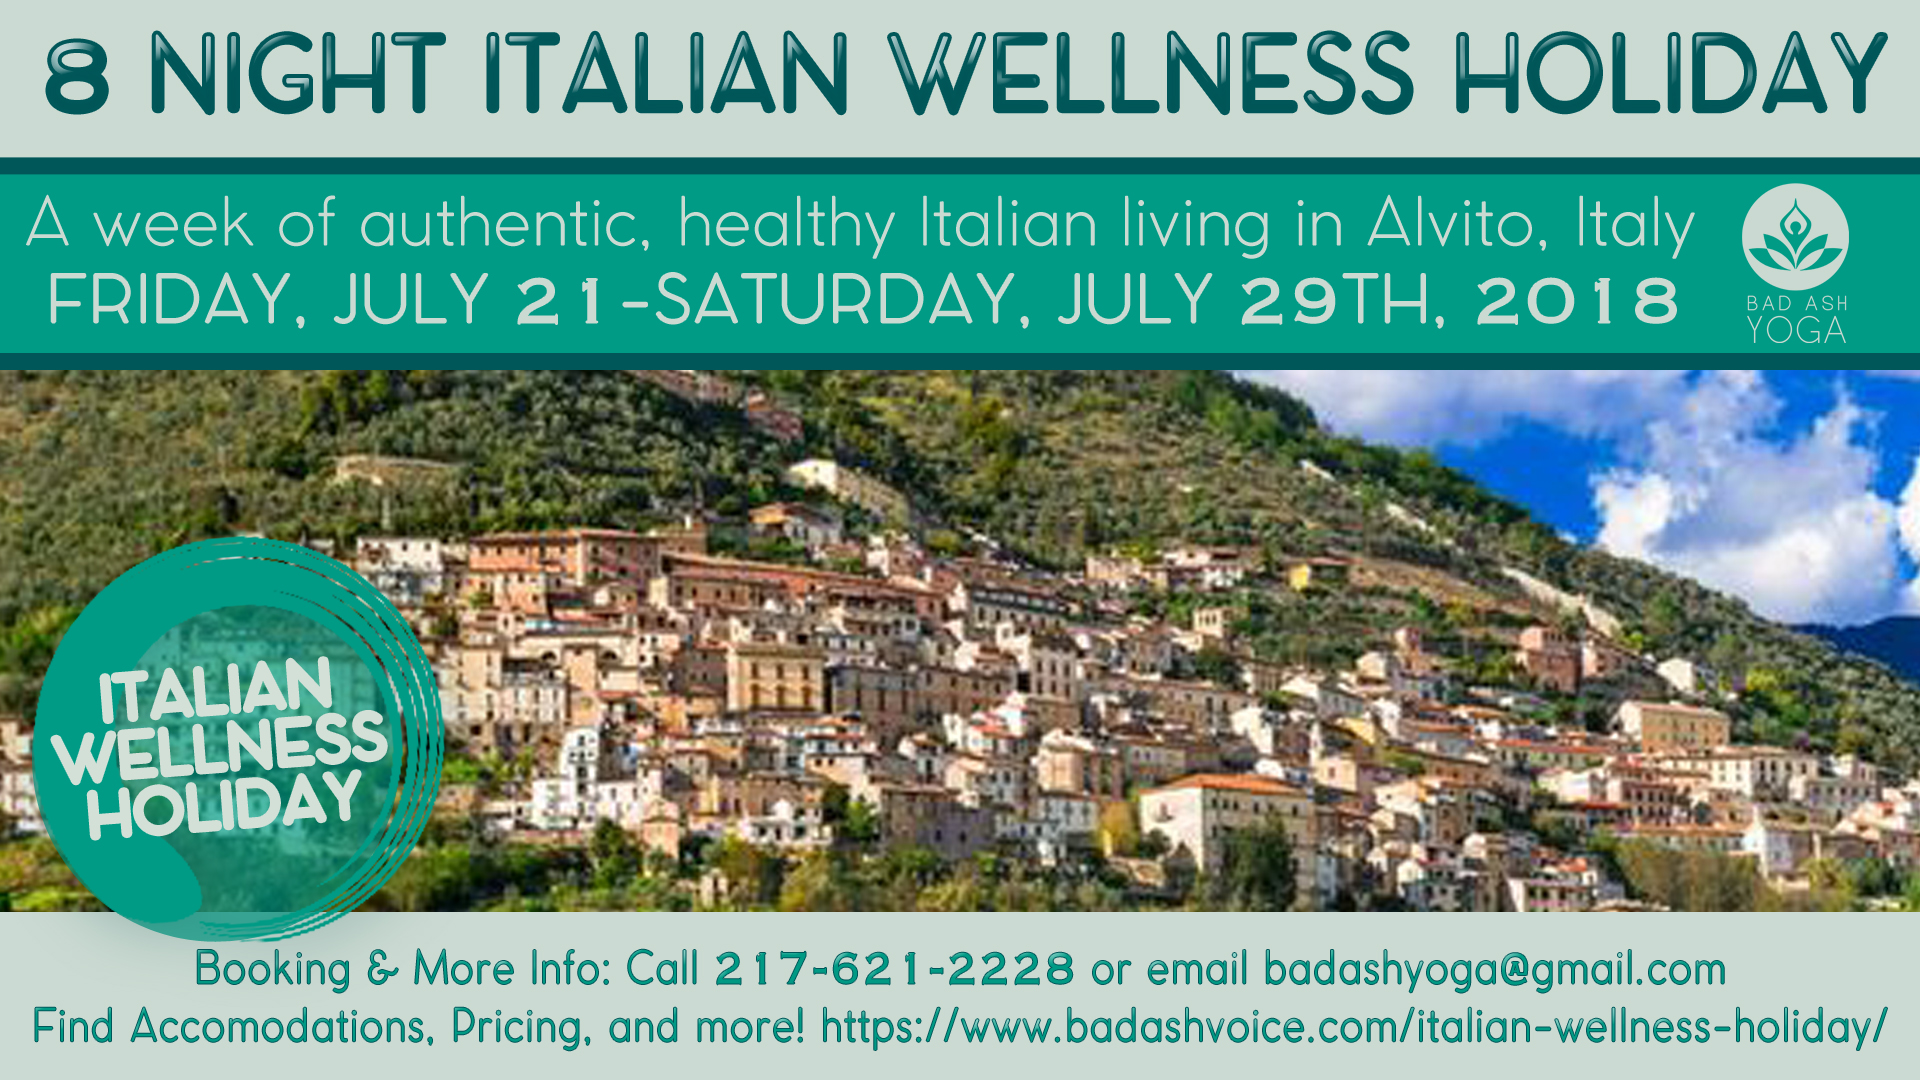 Italian Wellness Holiday Banner